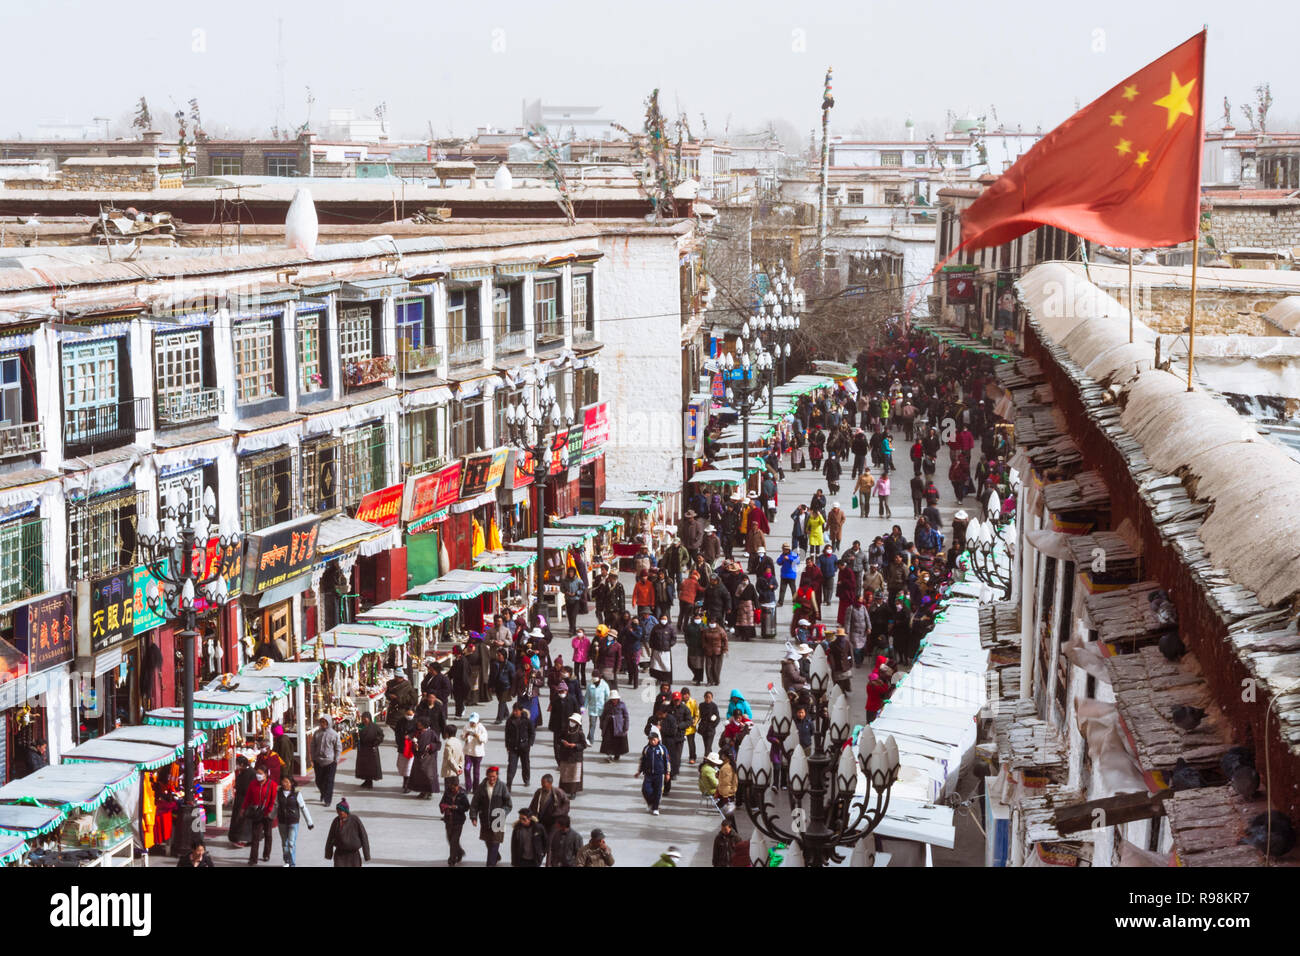 Lhasa, Tibet Autonomous Region, China : A Chinese flag waves over the people walking along one of the main streets of the Barkhor district. - Stock Image